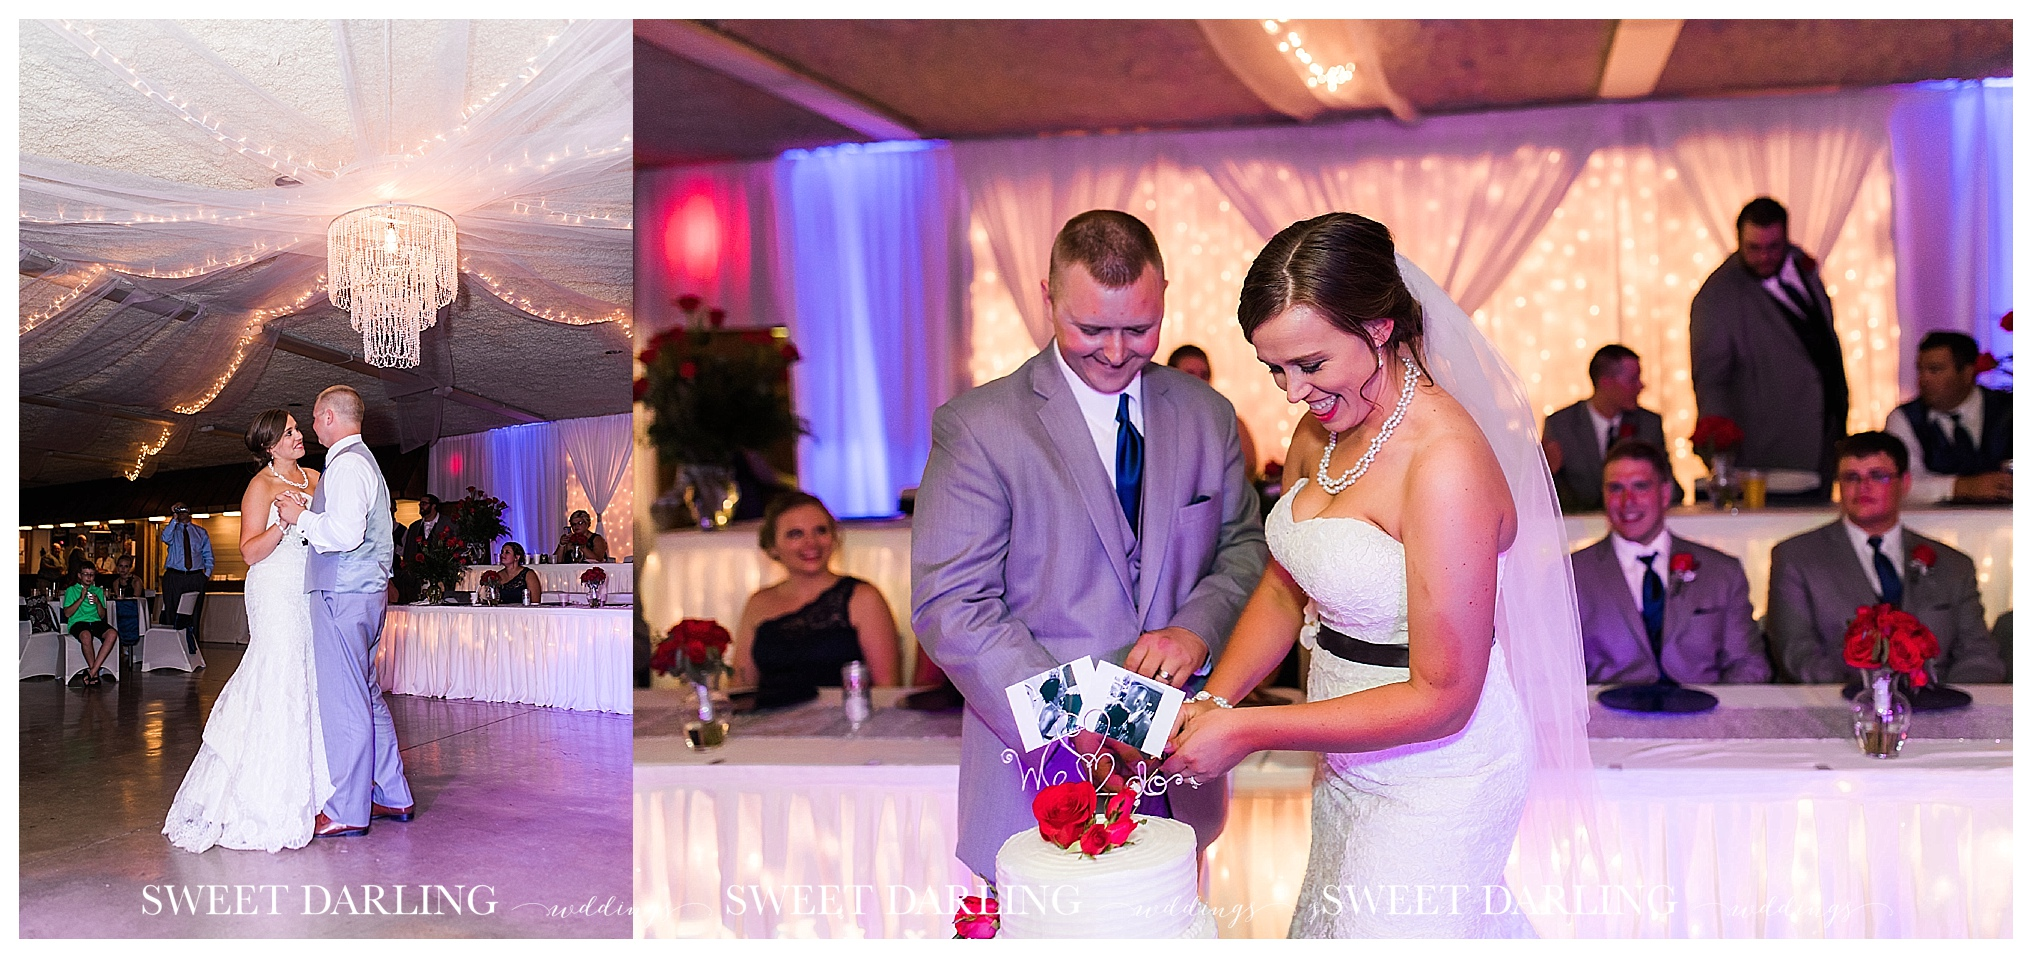 champaign-county-royal-paxton-illinois-sweet-darling-weddings-photography-red-navy-roses_1413.jpg